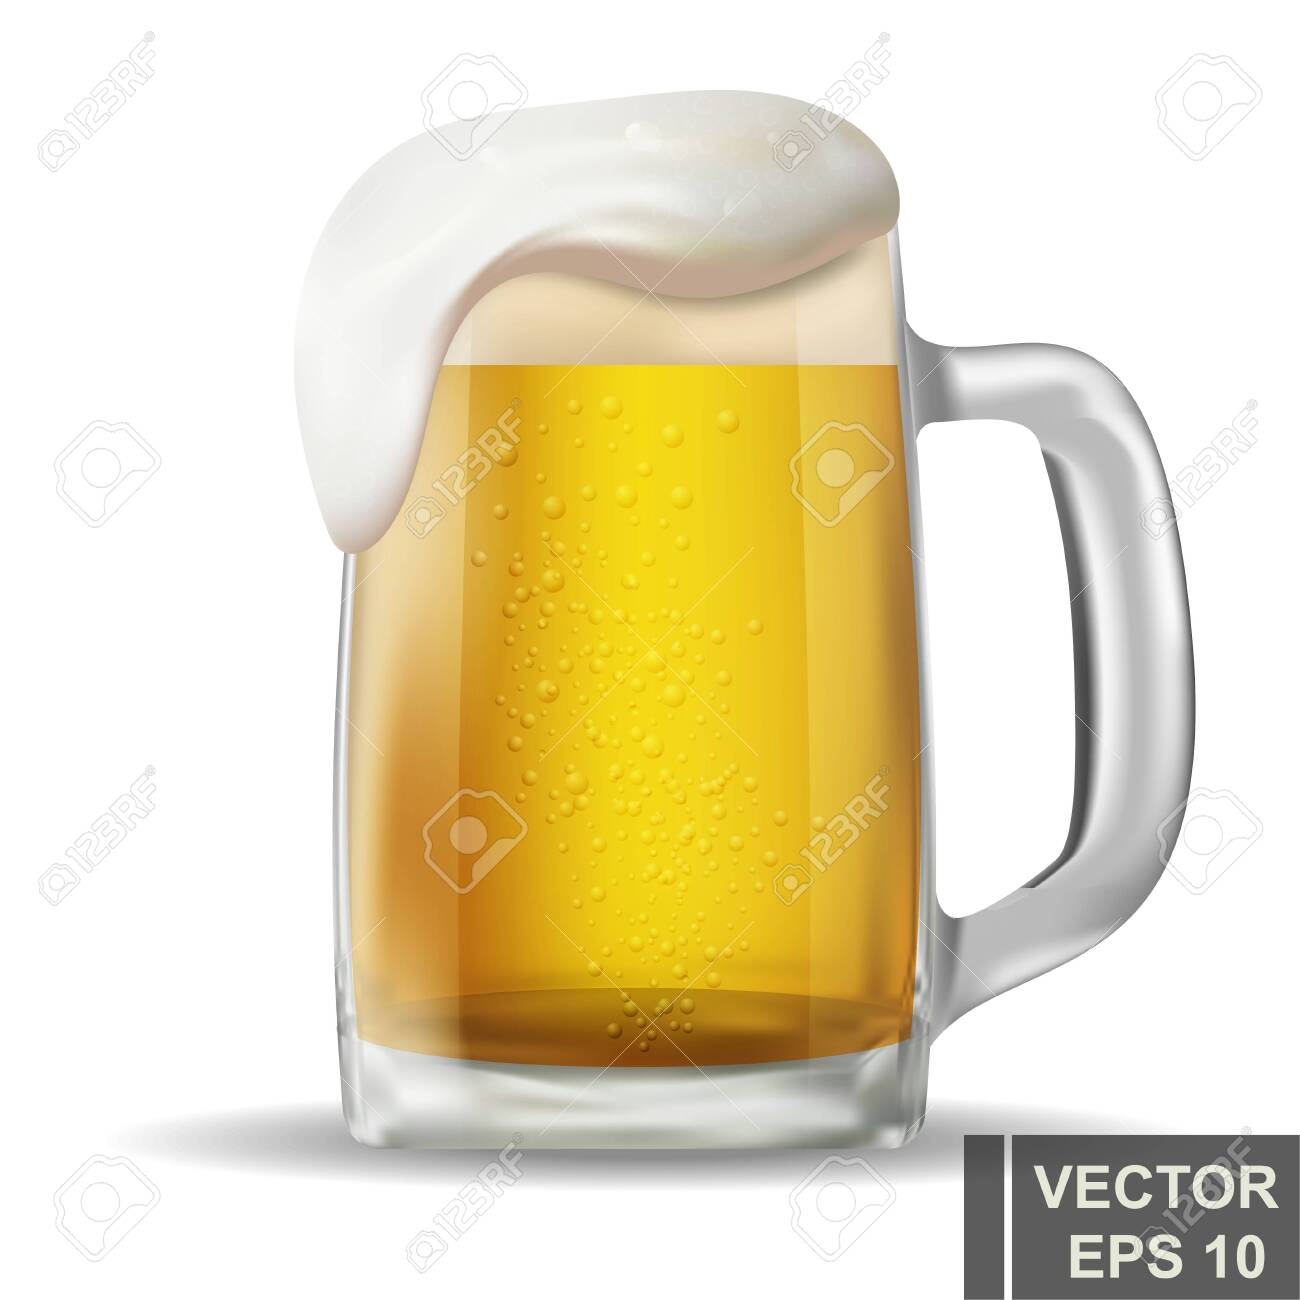 realistic beer mug. Alcoholic drink. Bright. Isolated object. For your design. - 135039367